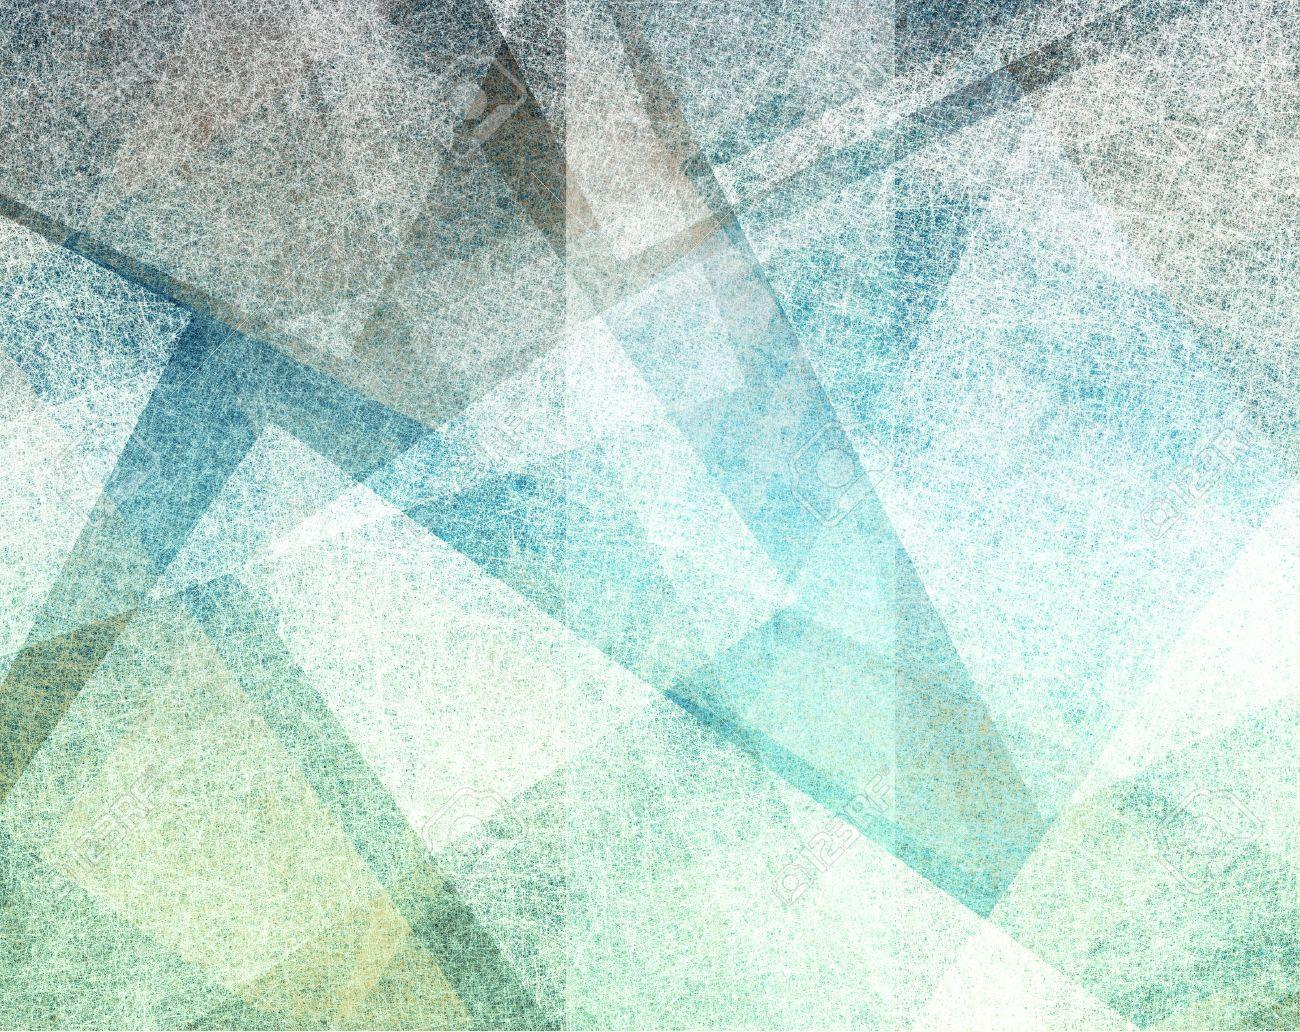 Abstract Paper Geometric Shapes Background Texture Stock Photo 1300x1032